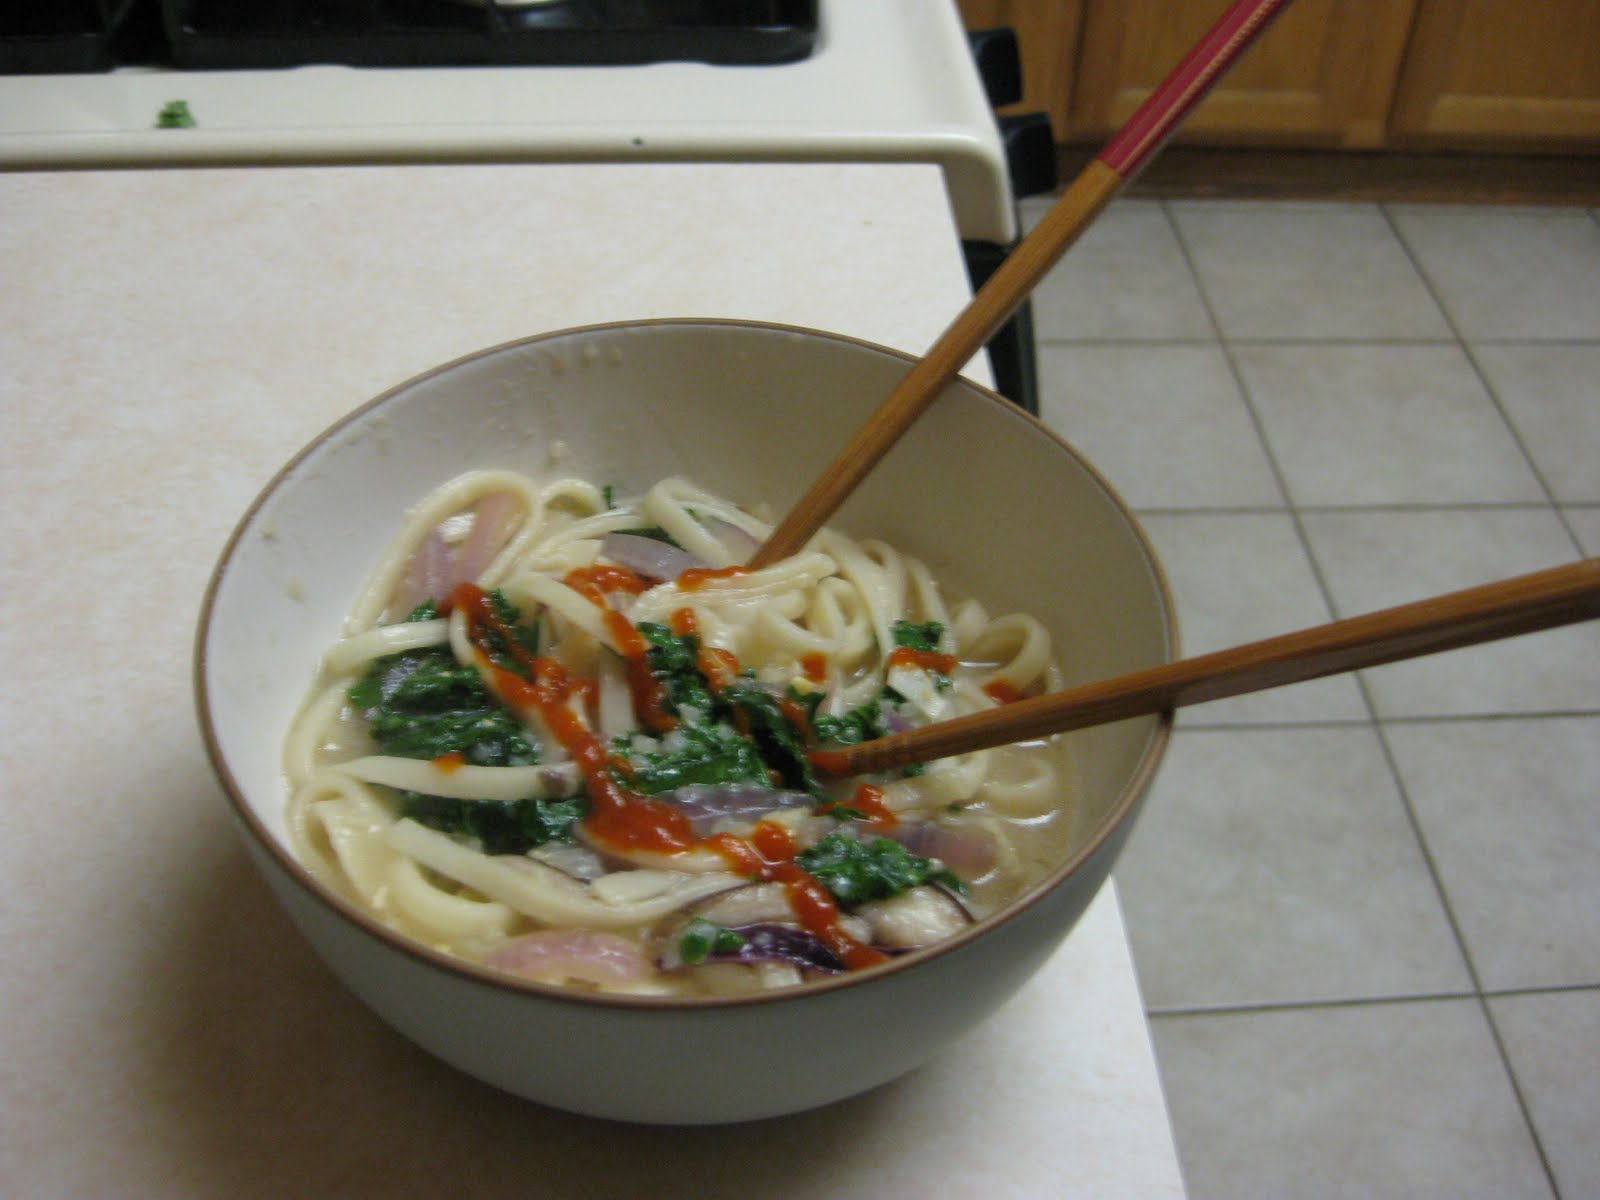 Here's the recipe for Udon with Shiitake Mushrooms and Kale in Miso ...